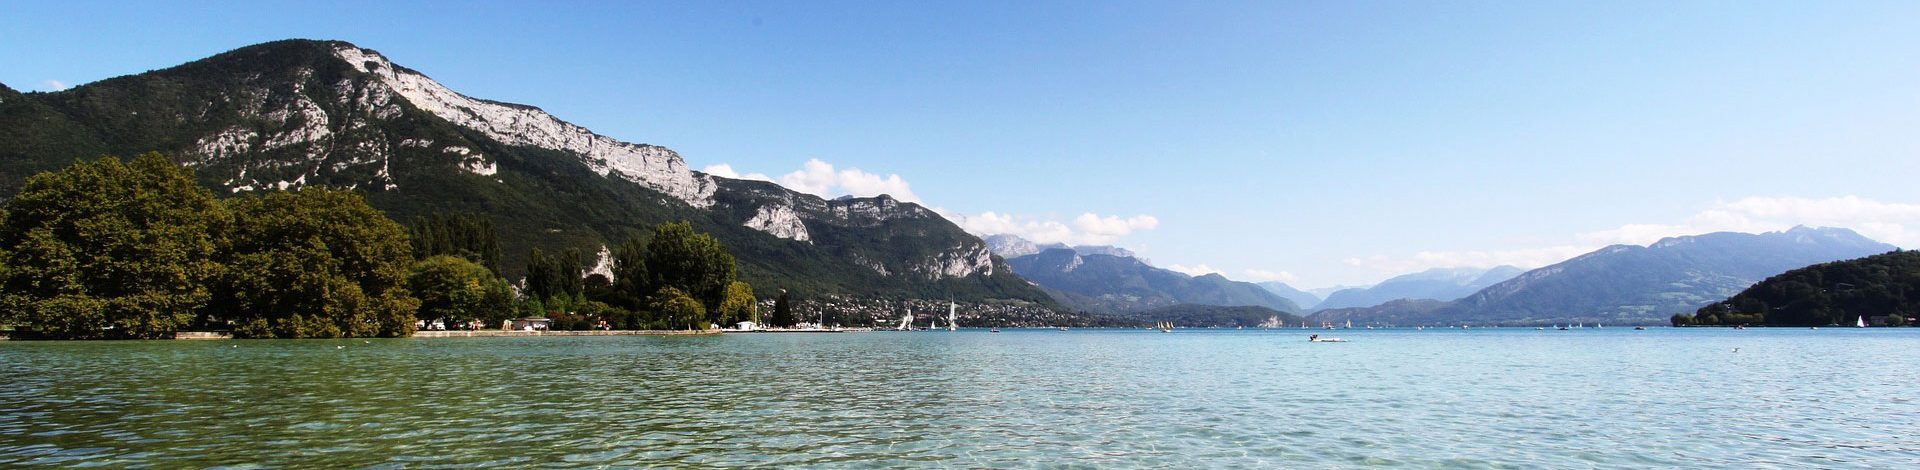 annecy-md1